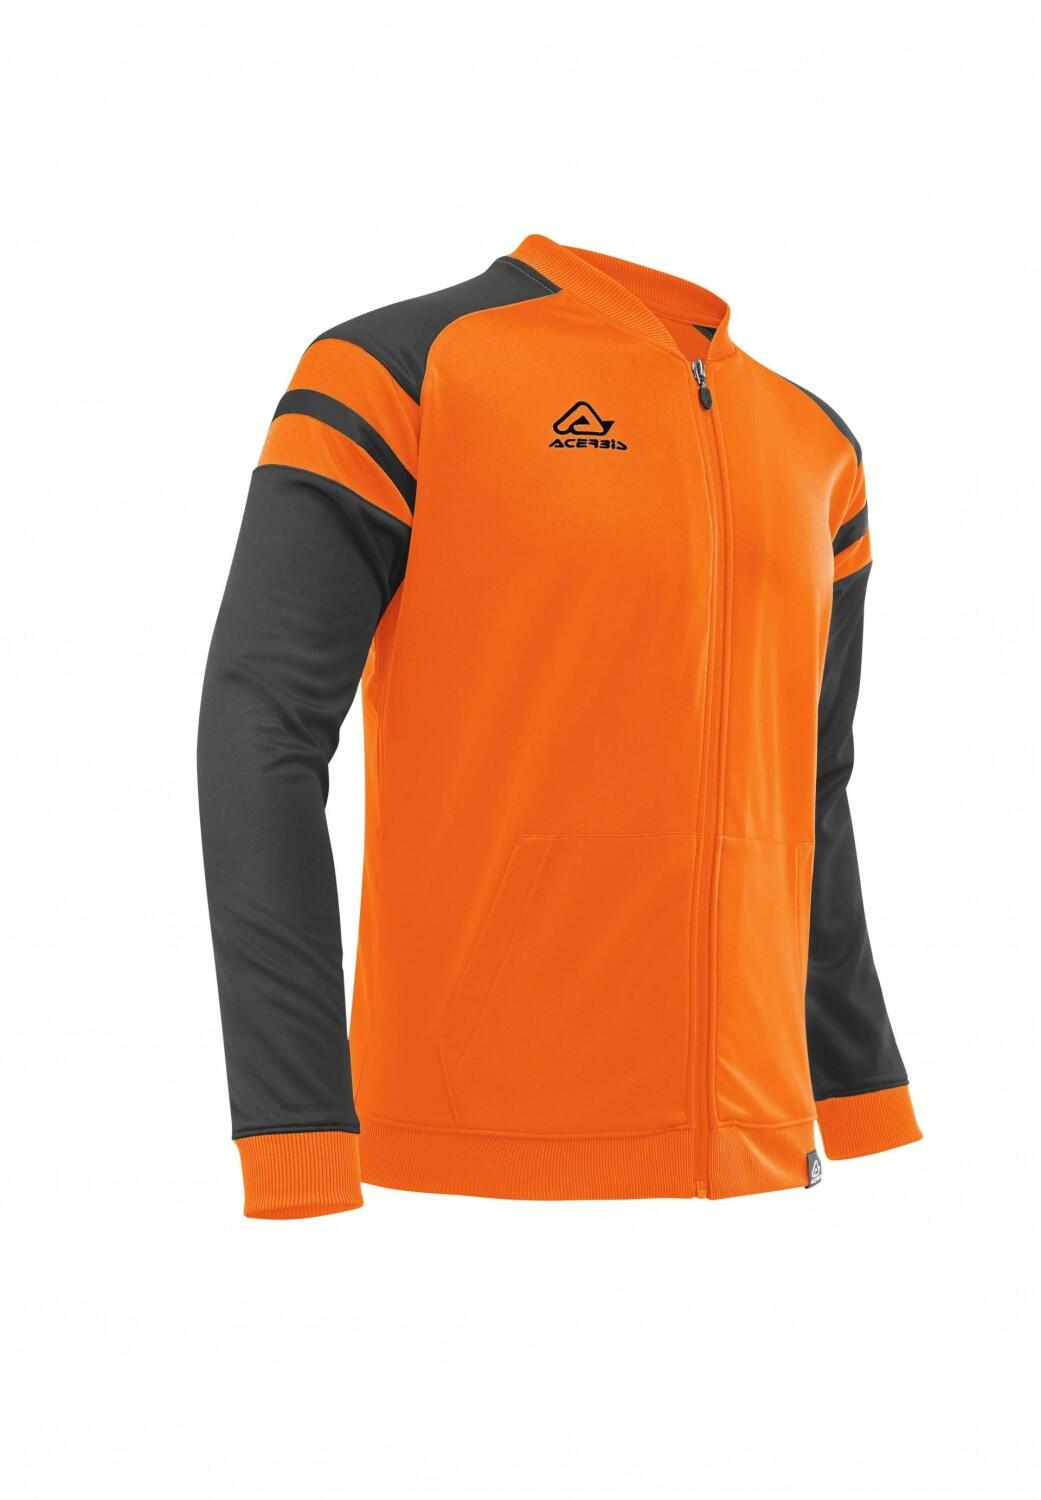 Trainingsjacke  KEMARI  v. ACERBIS  orange - schwarz , 5XS-4XL